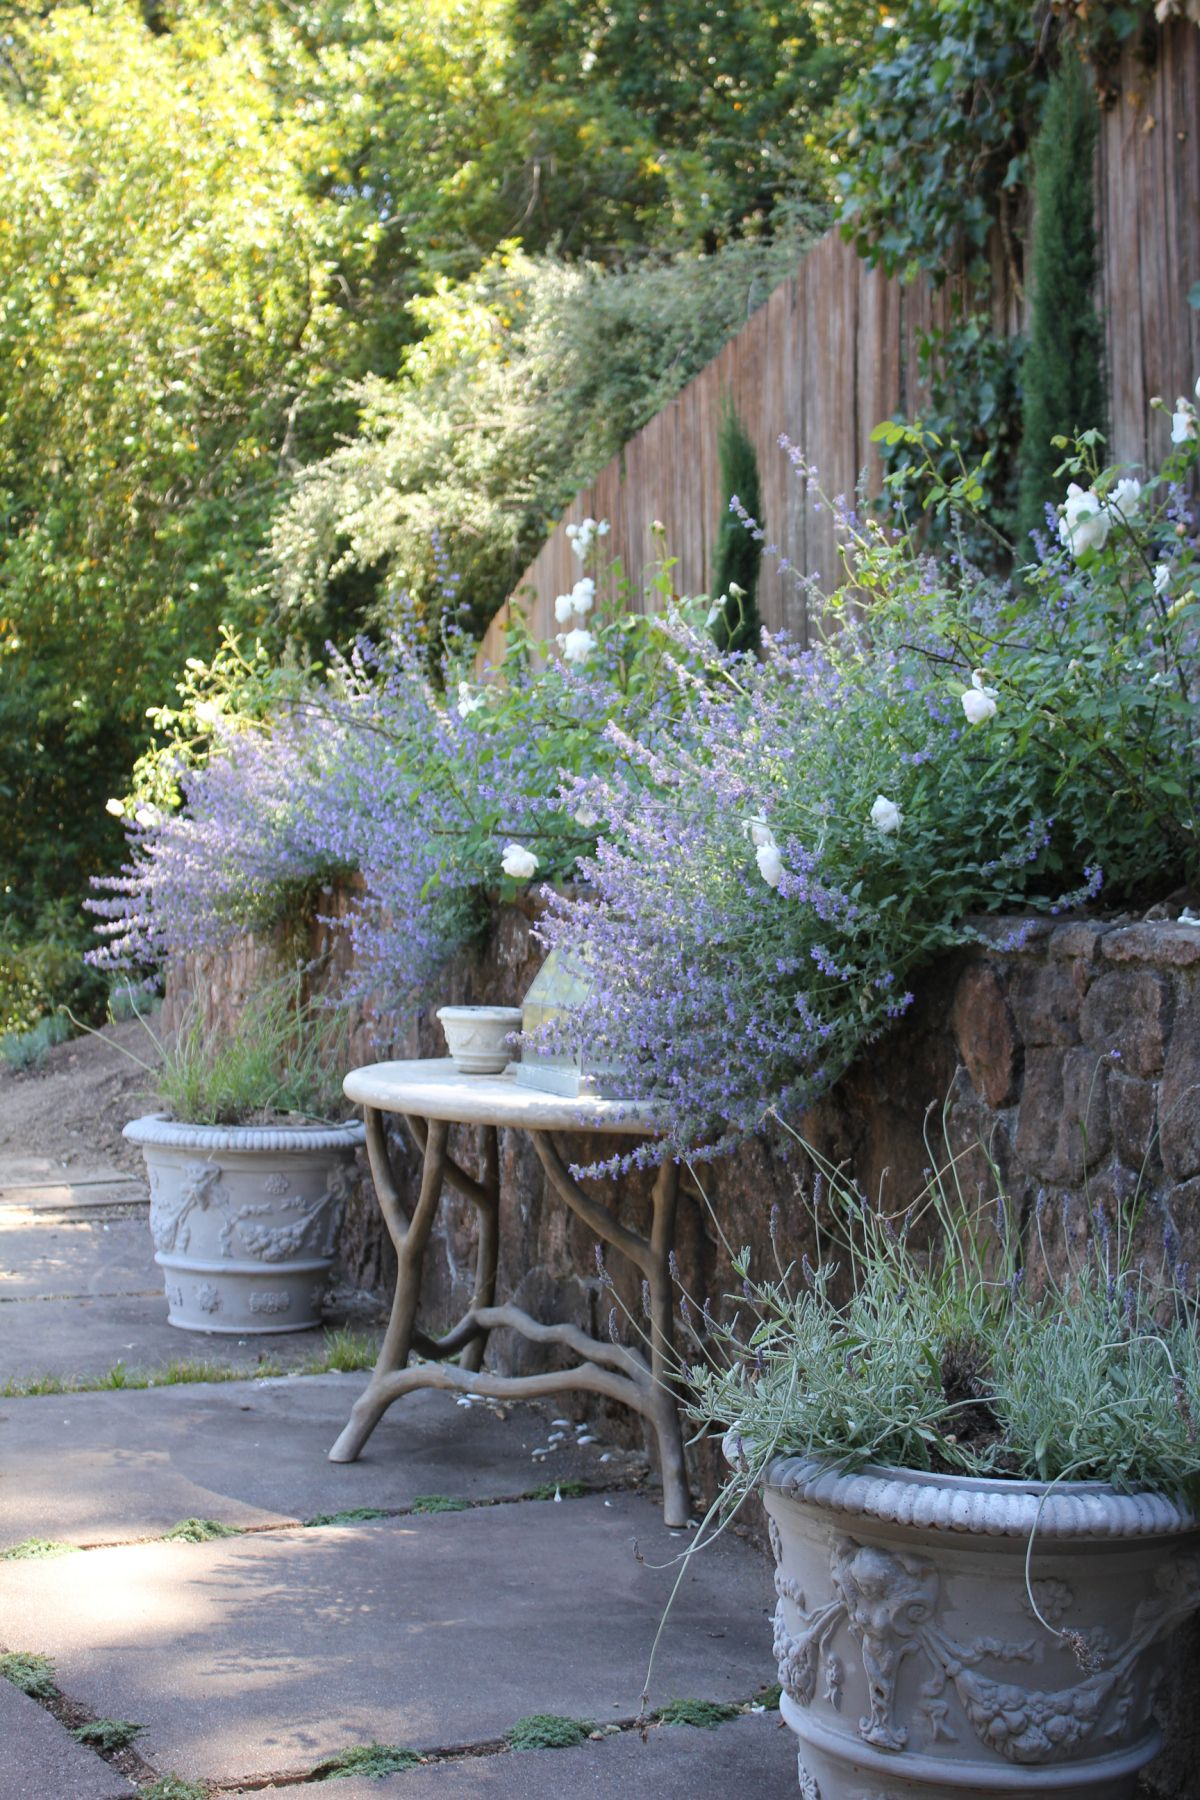 Summer Sojourn With Images French Country Garden French Garden Beautiful Gardens